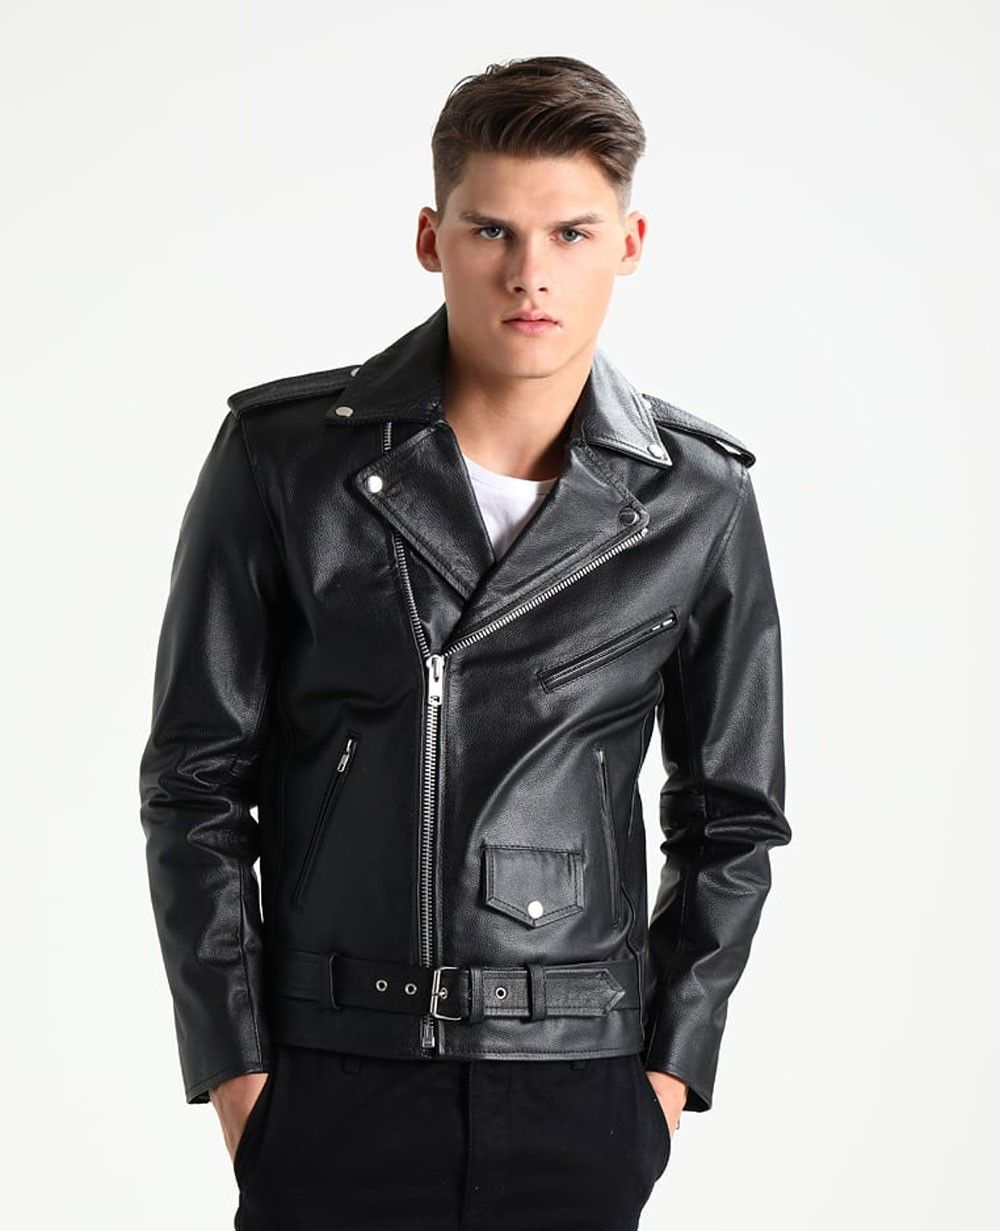 Pin On Men Fashion Leather Jackets